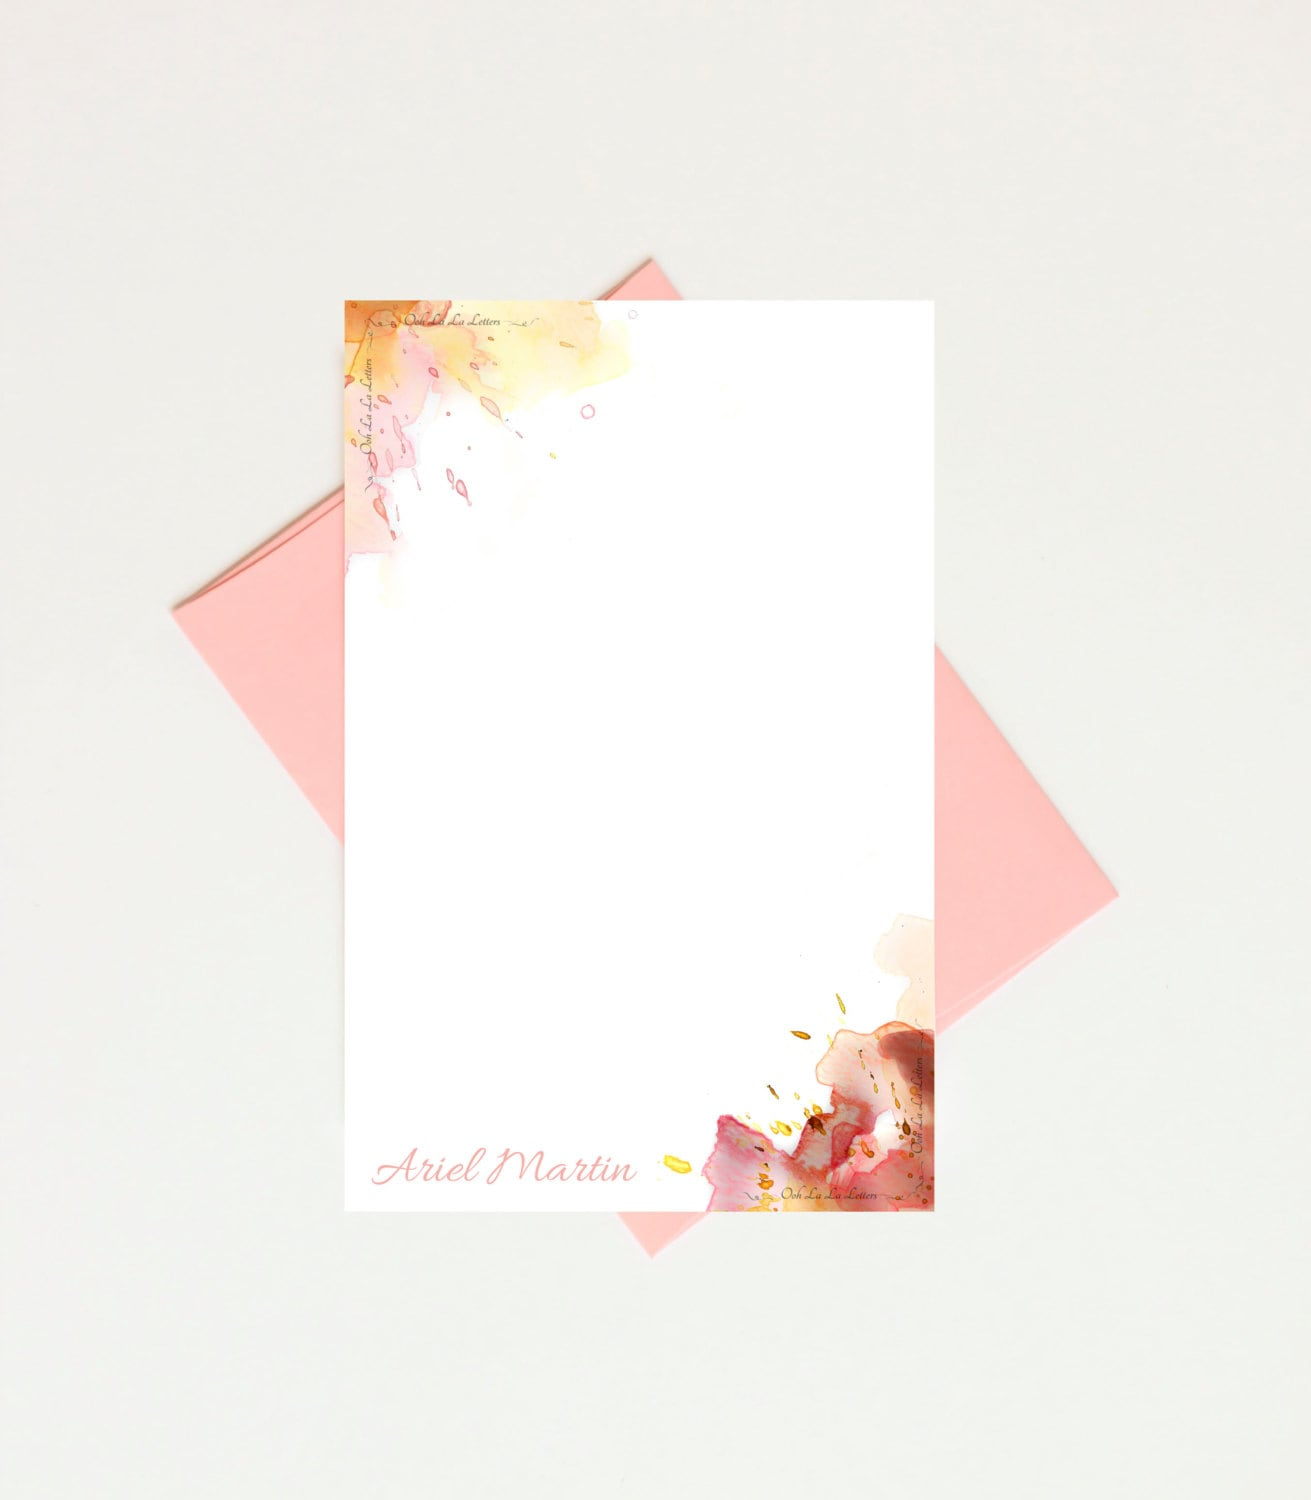 Personalized Papers Executive Stationery: Personalized Stationery Paper Christmas Gifts For Mom